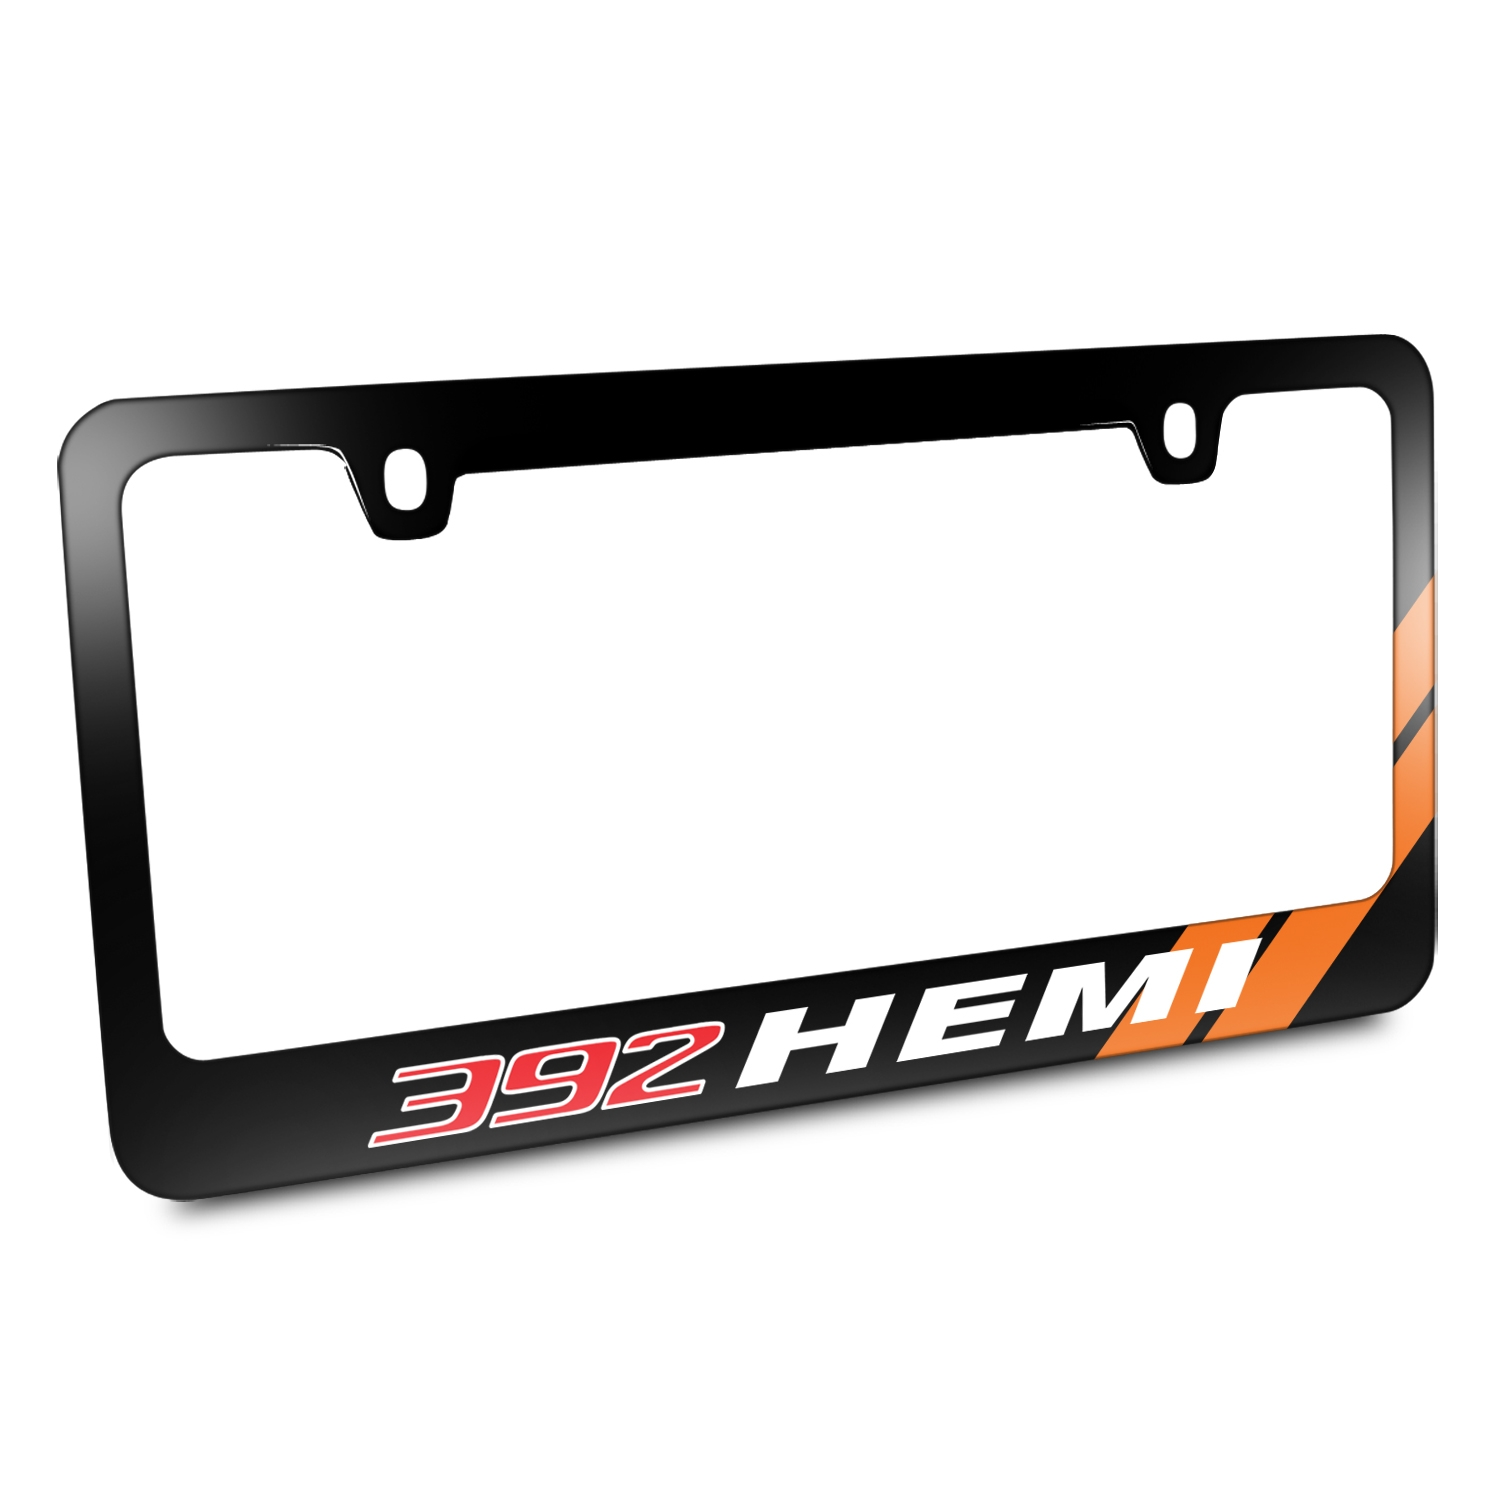 392 HEMI Orange Stripe Black Metal License Plate Frame